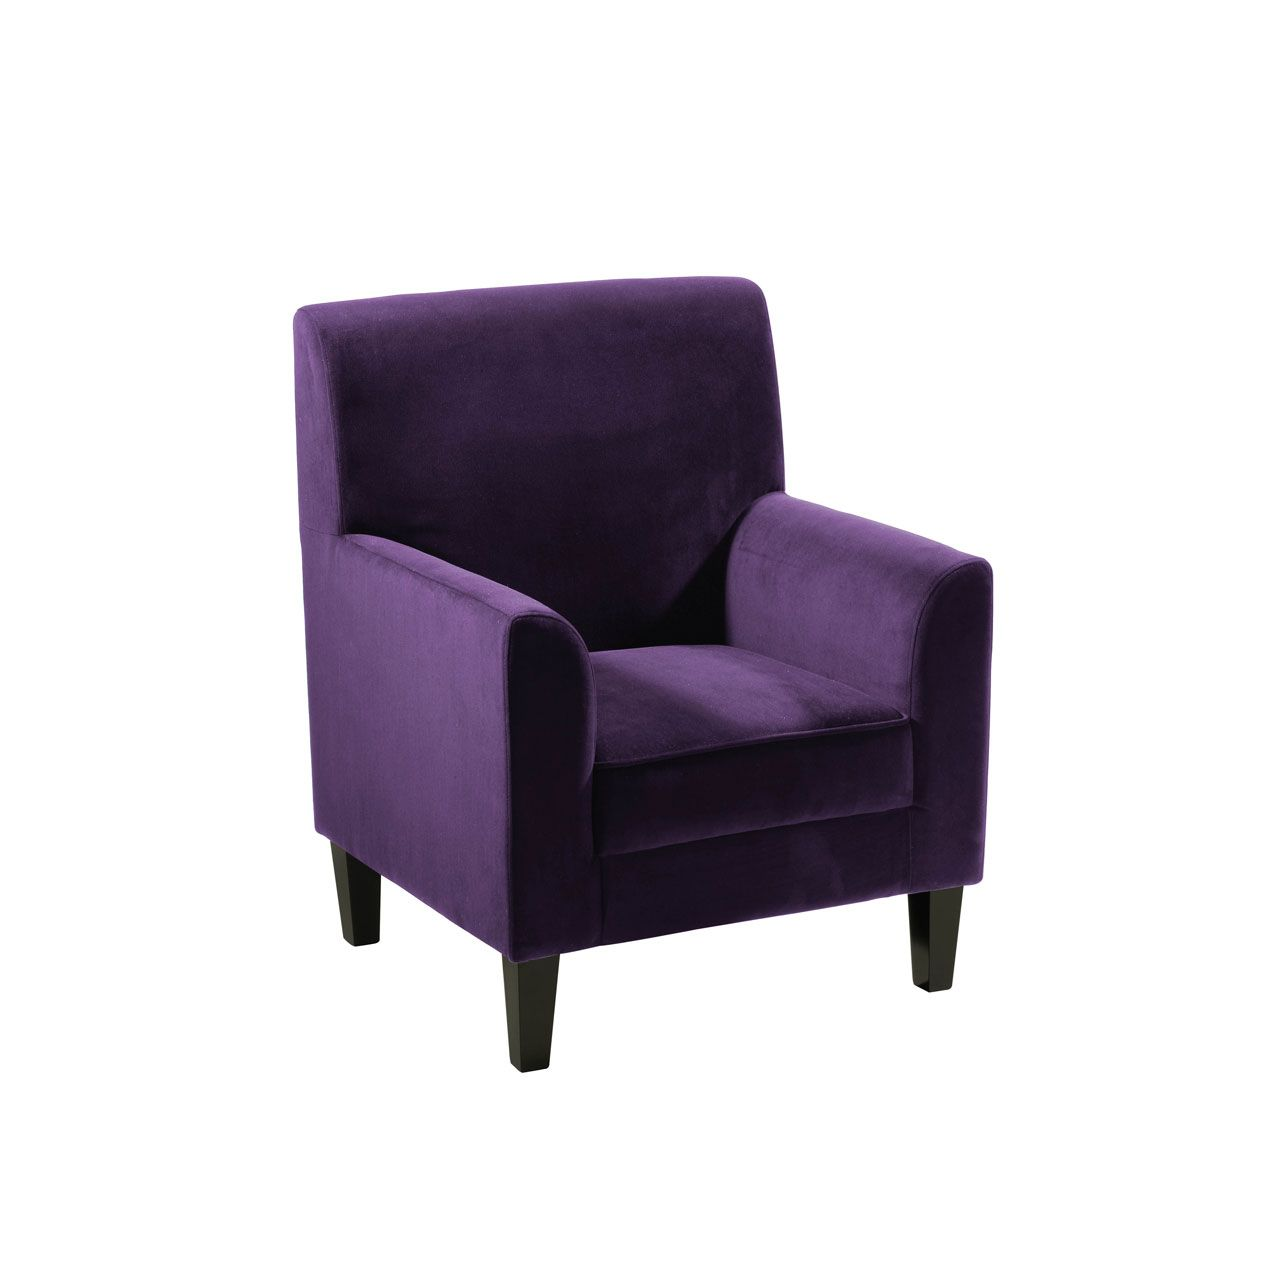 Purple Chairs For Sale | ... Furniture Living Room Casual Chairs Medan  Purple Velvet